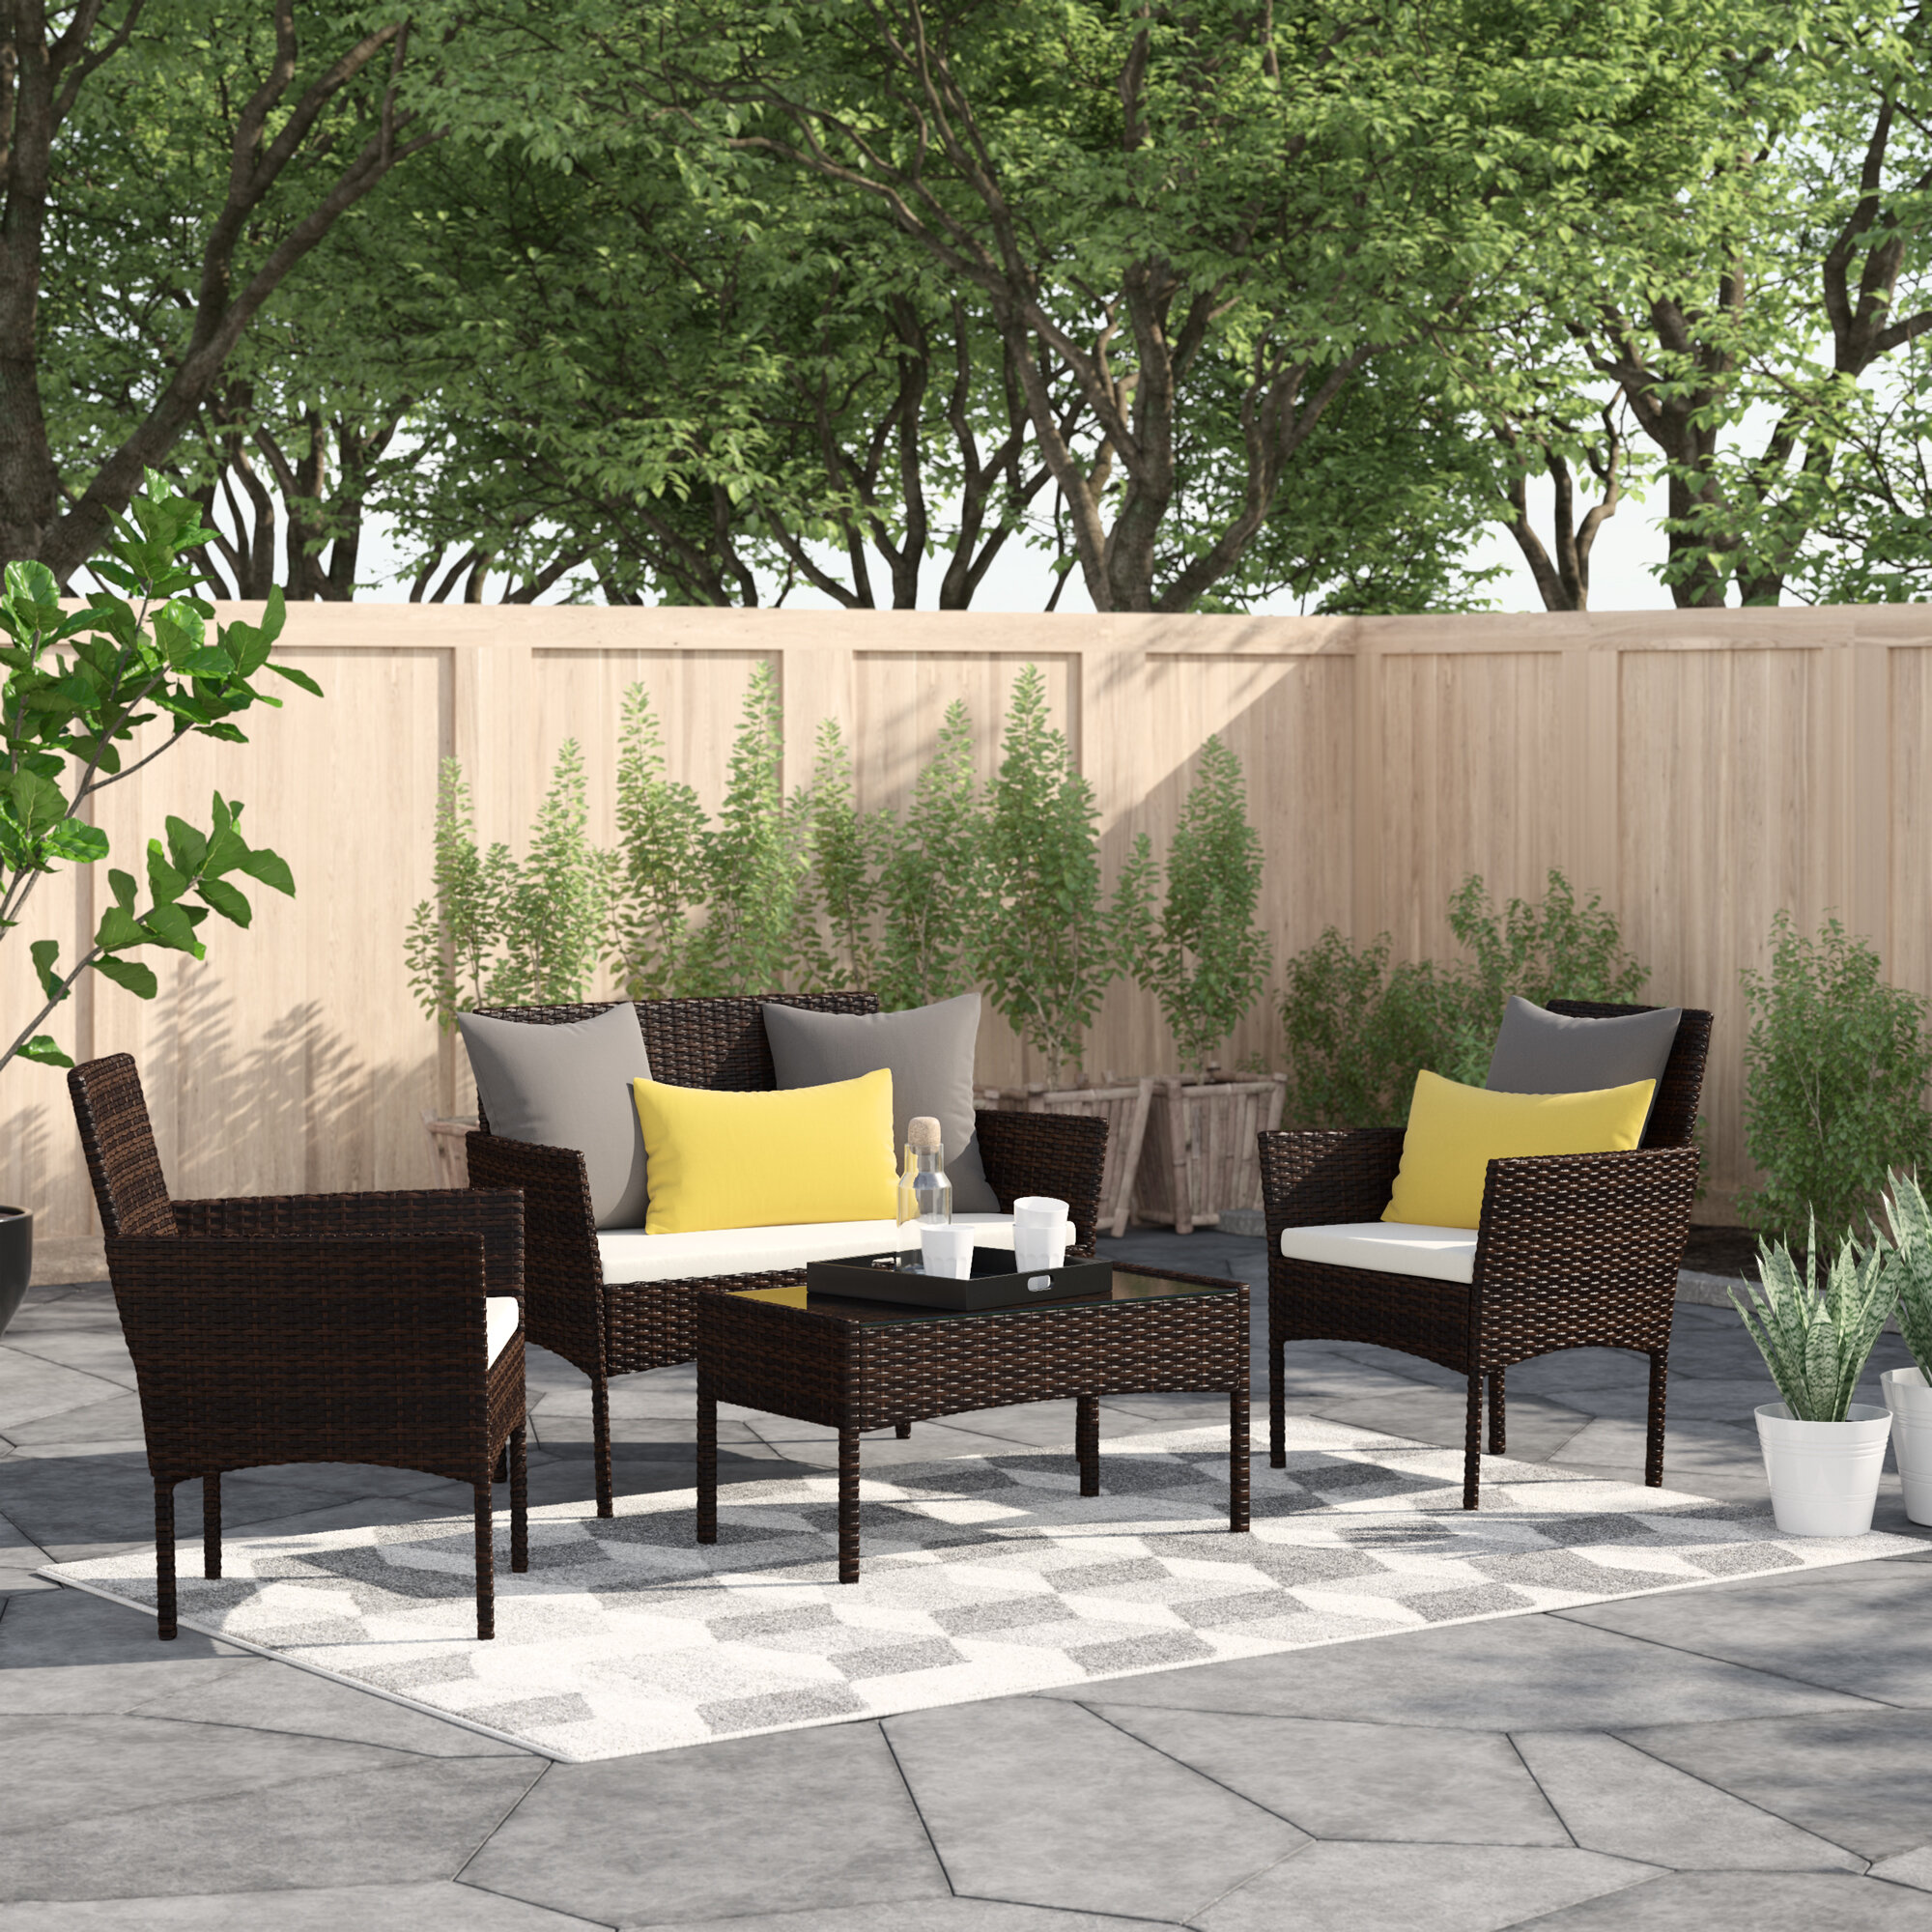 Zipcode Design™ Moro 4 Piece Rattan Sofa Seating Group with